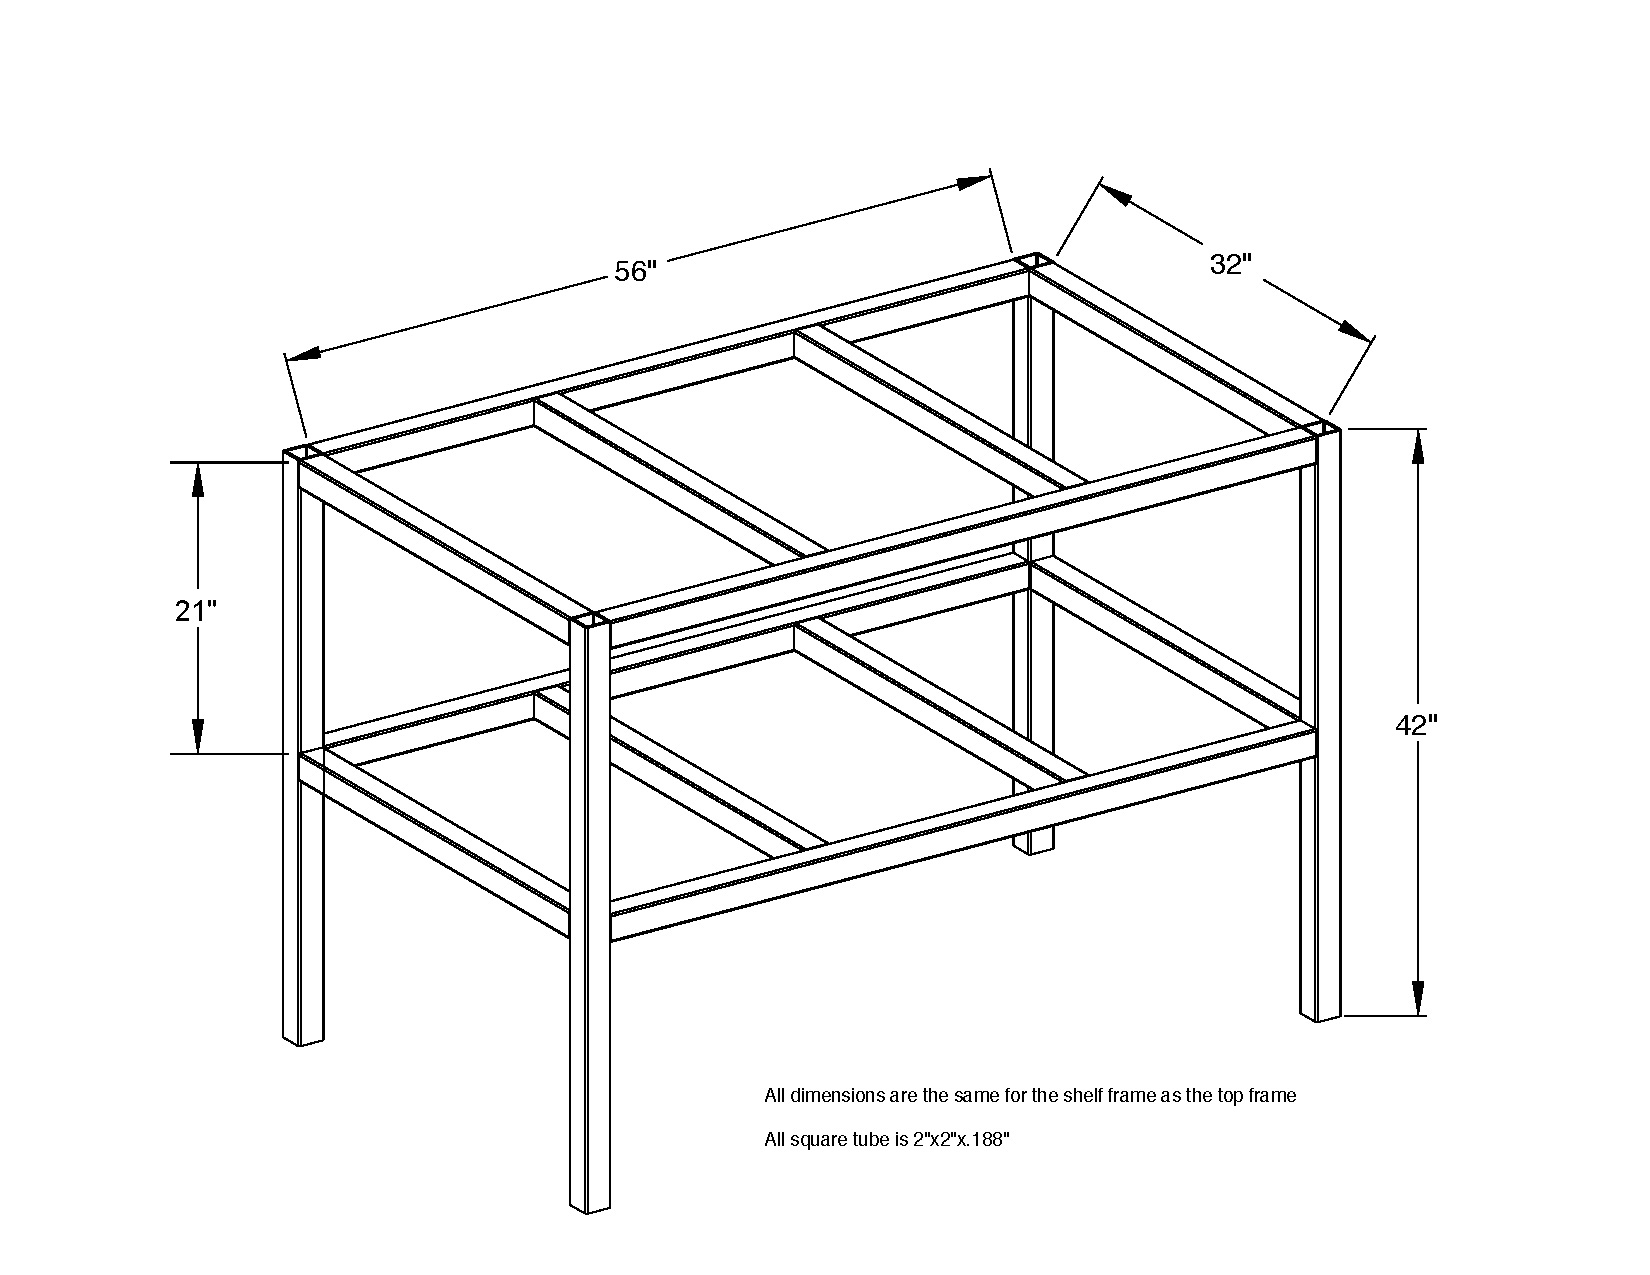 Welding Table Plans 3x5 Heavy Duty Red Wing Steel Works Plan Fabrication  Table